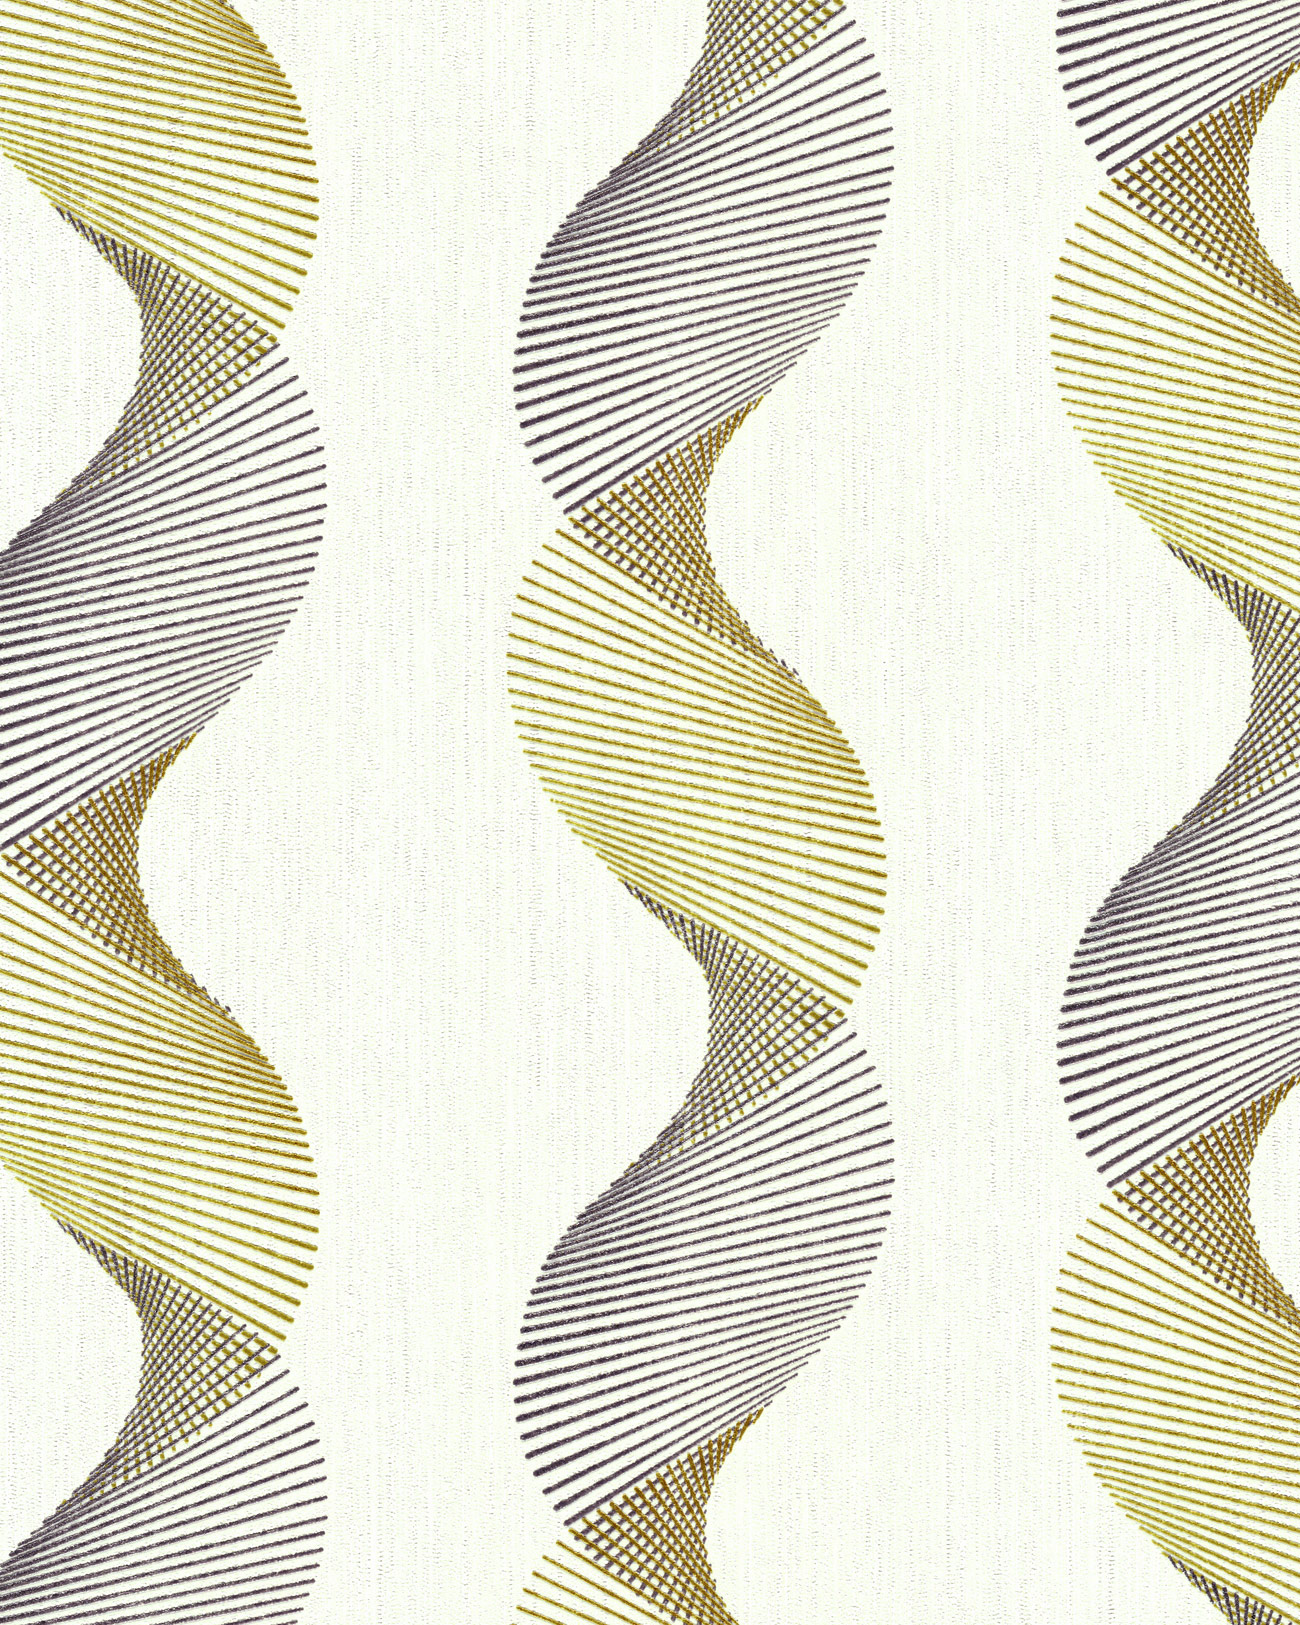 Graphic Wallcovering Wall Edem 85035br30 Vinyl Wallpaper Slightly Textured Wavy Lines And Metallic Highlights Cream Oyster White Gold Silver 533 M2